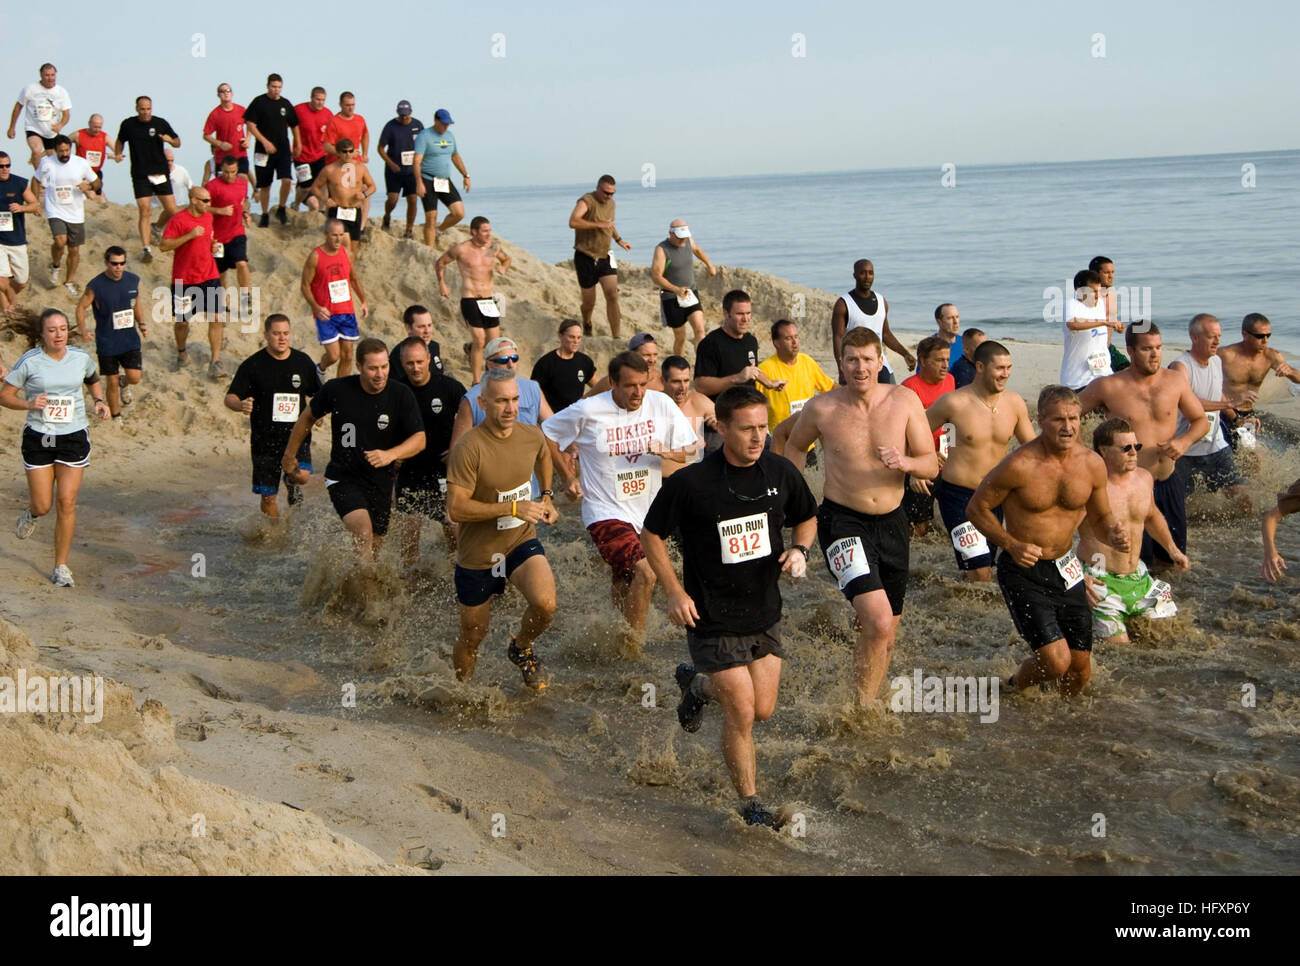 090808-N-7874H-082 NORFOLK, (Aug. 8, 2009) Runners slosh through the water pit during the Naval Amphibious Base - Stock Image